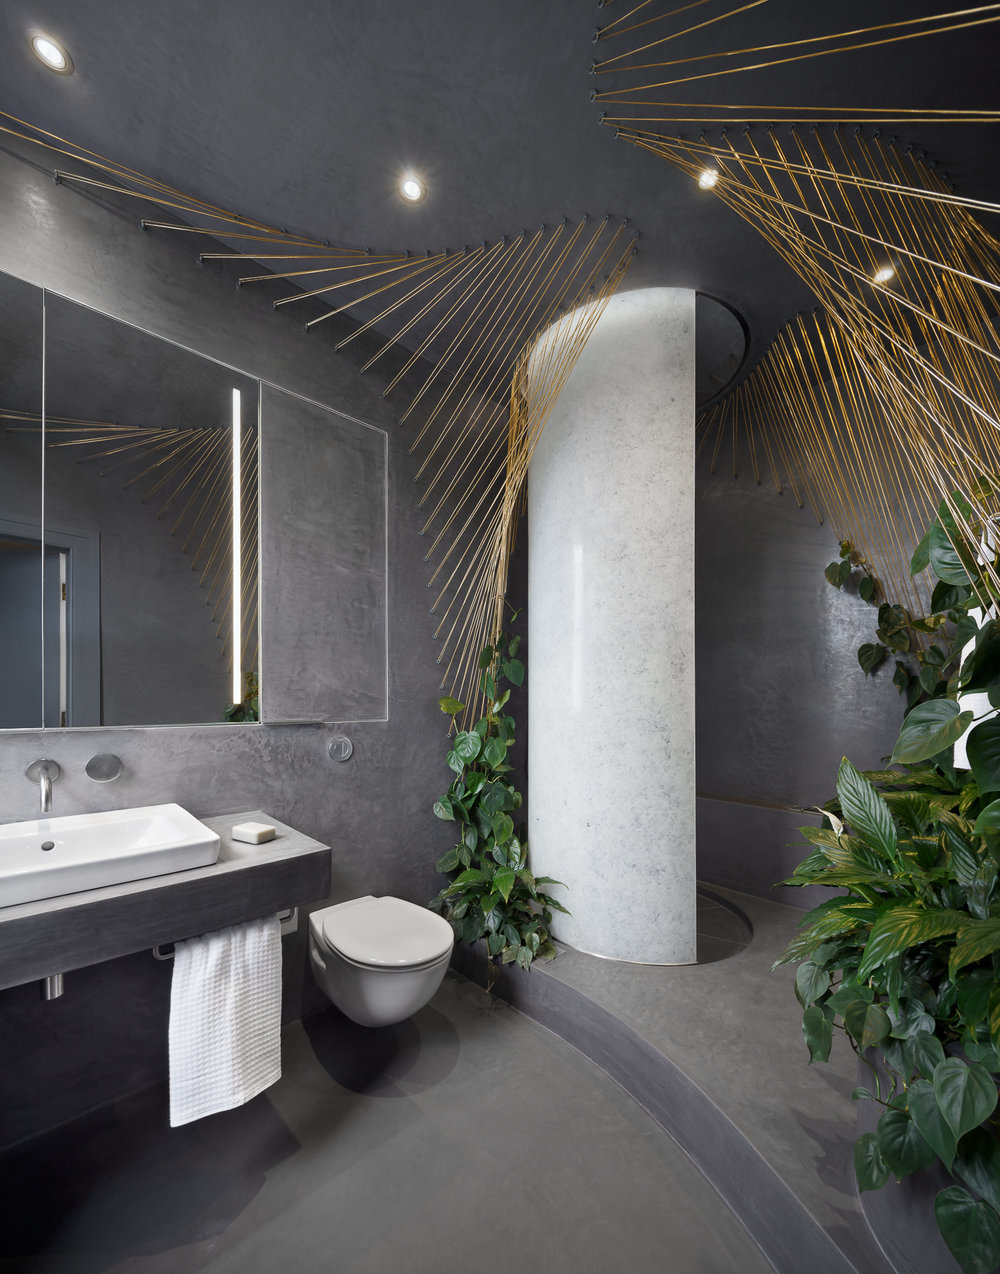 The bathroom ambience provides feeling of well-being.